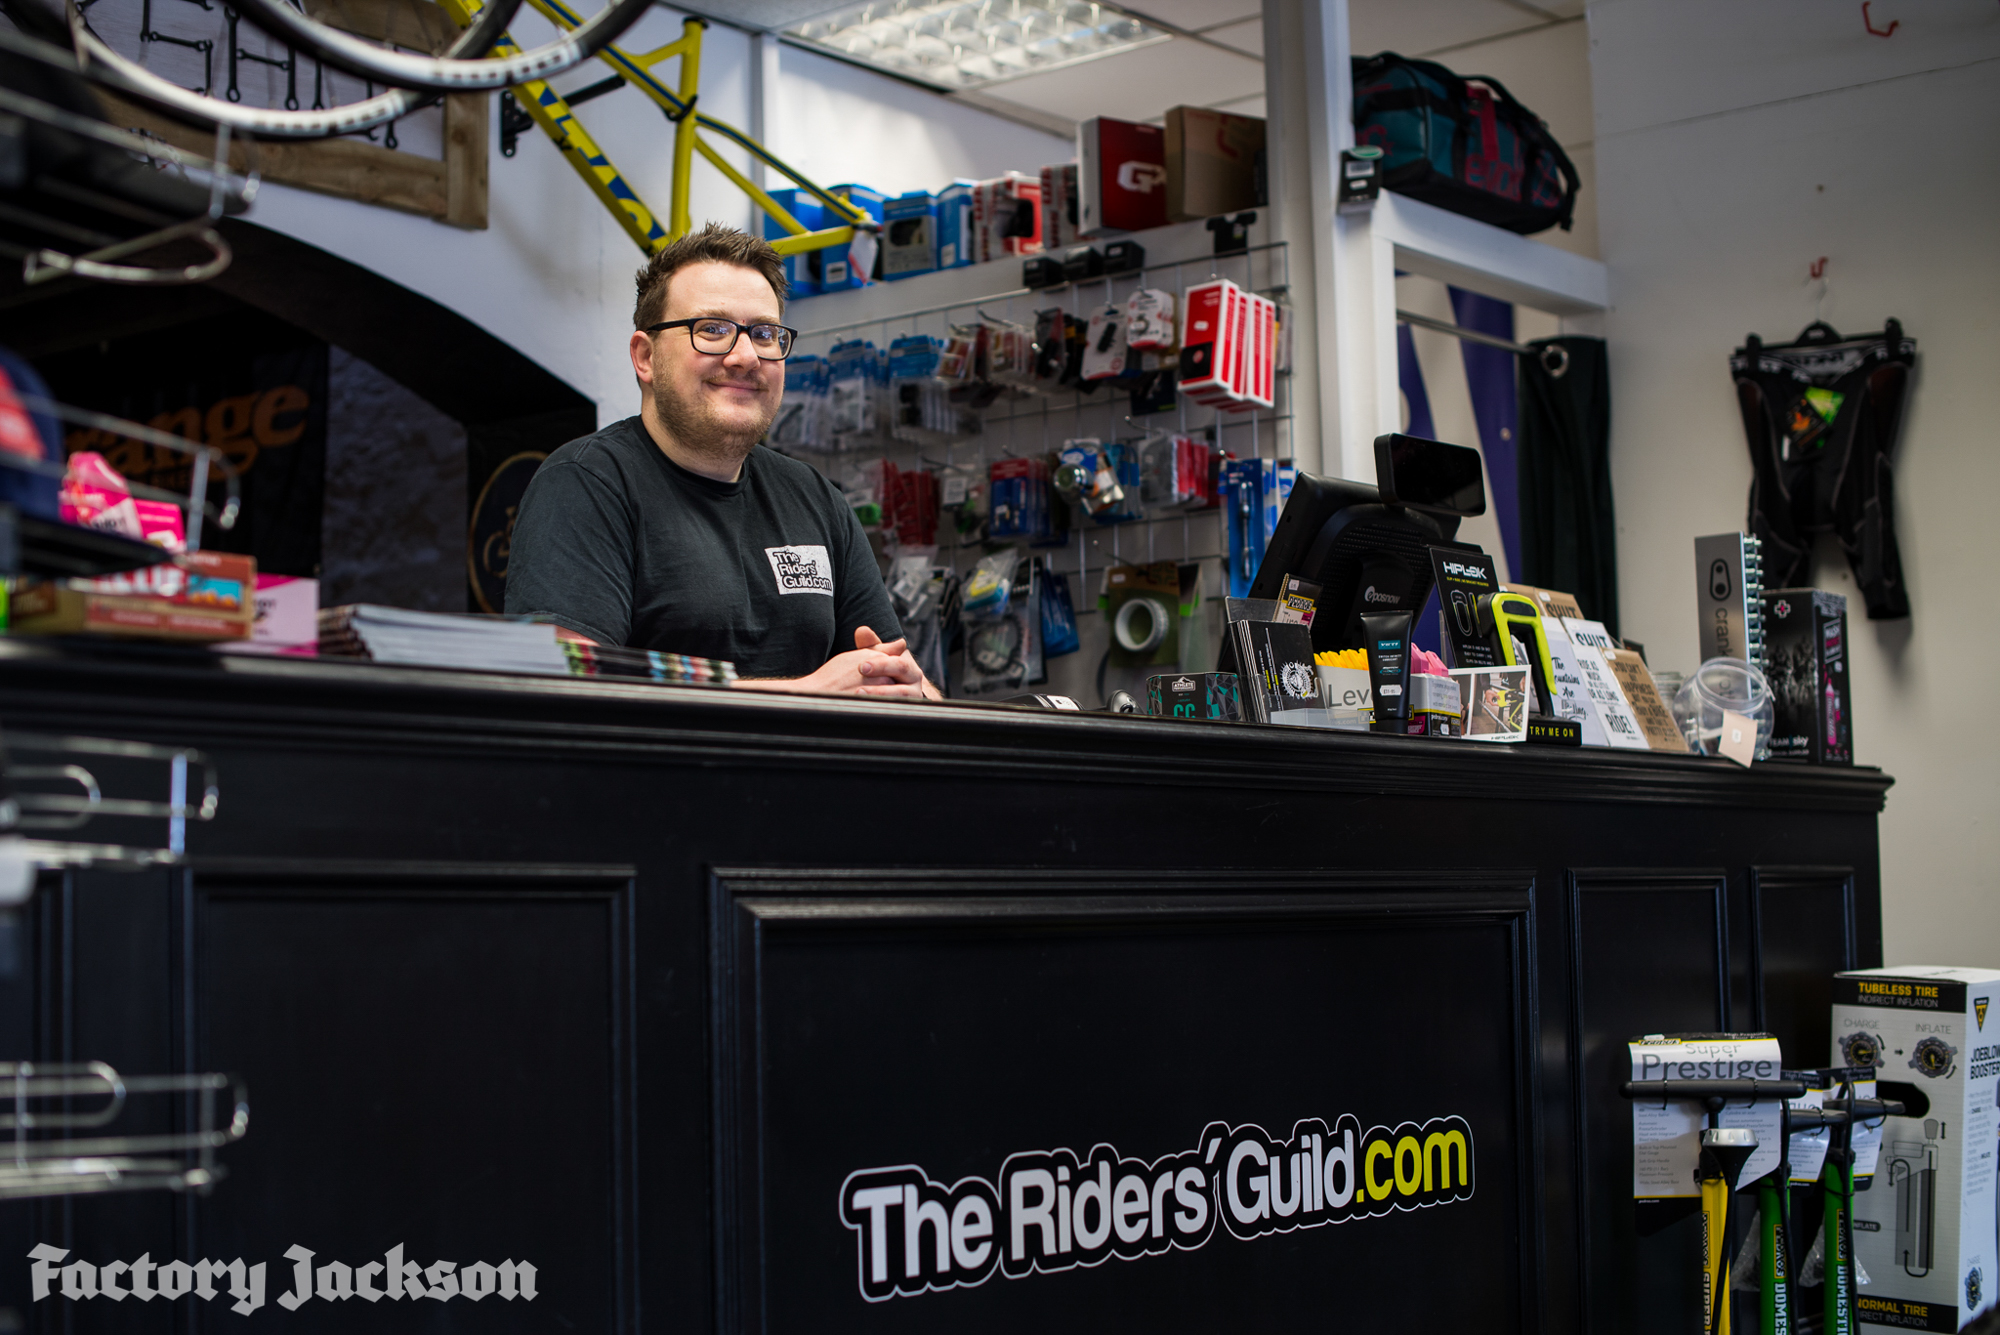 MTB Essentials - Aaron Ponsford of The Riders Guild